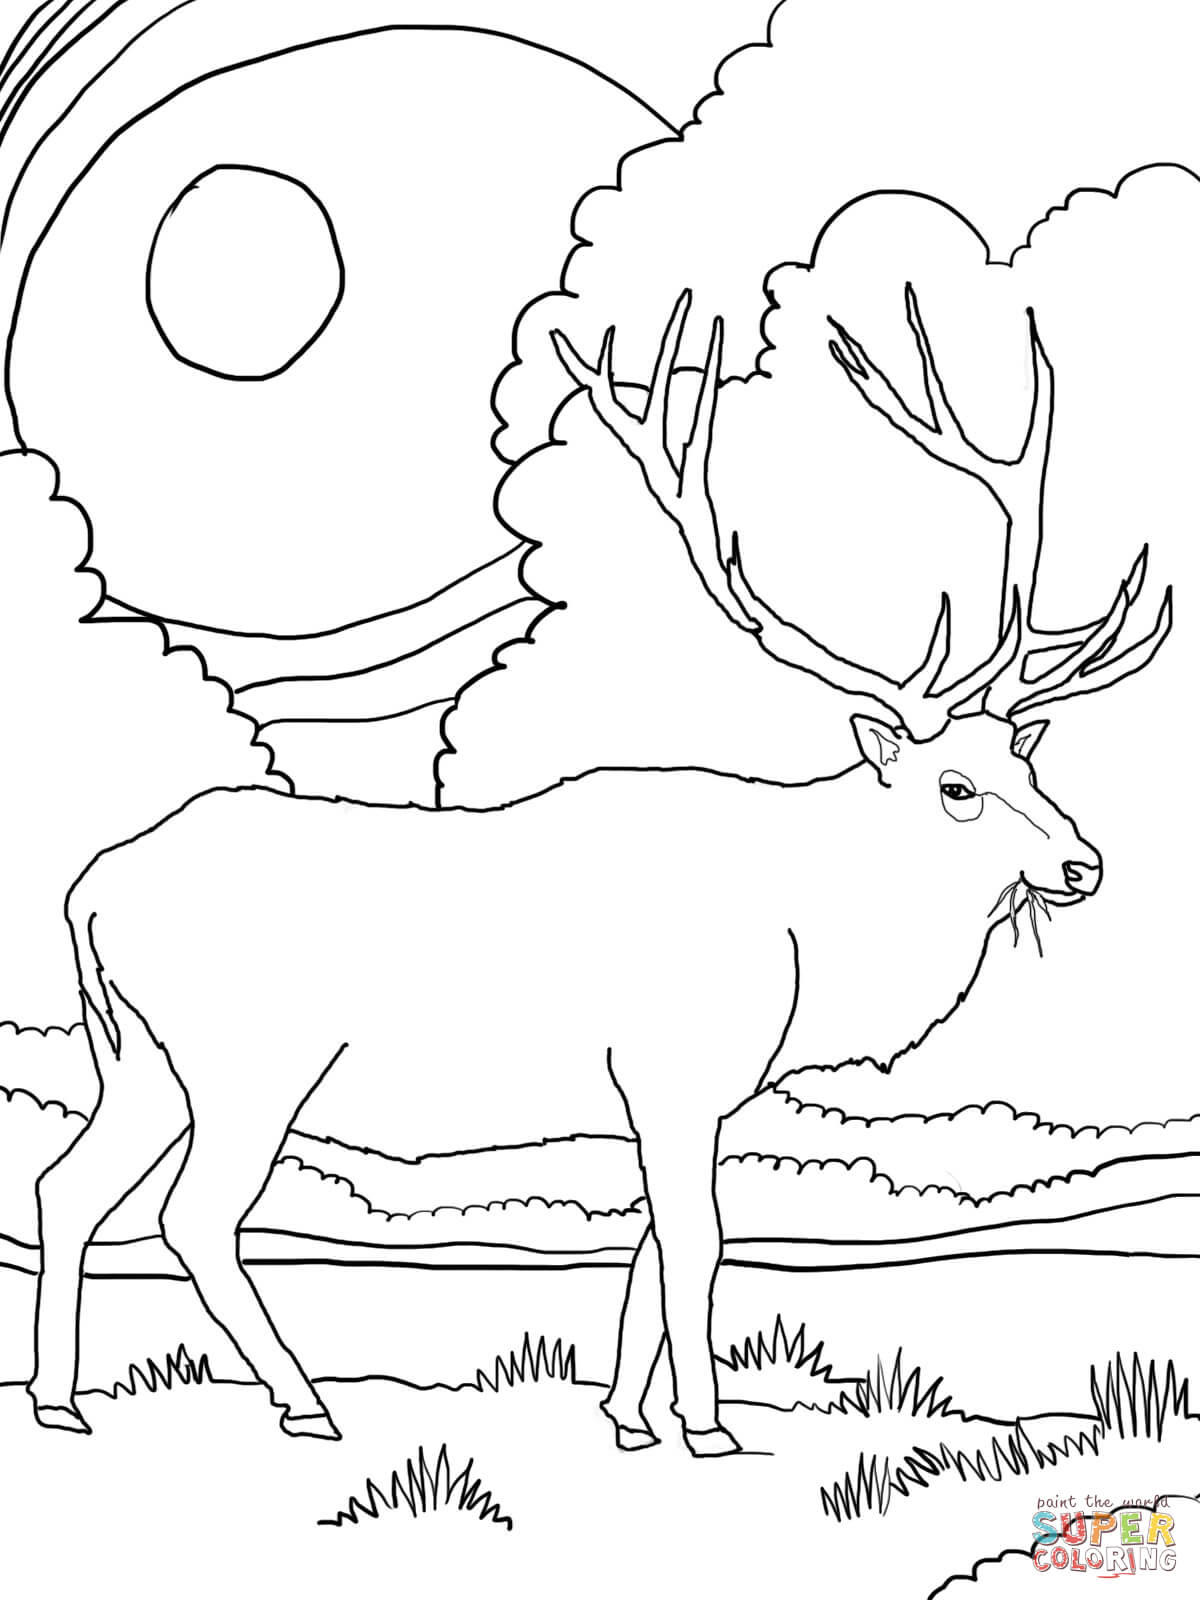 rocky mountain elk coloring page free printable coloring pages - Mountain Coloring Pages Printable